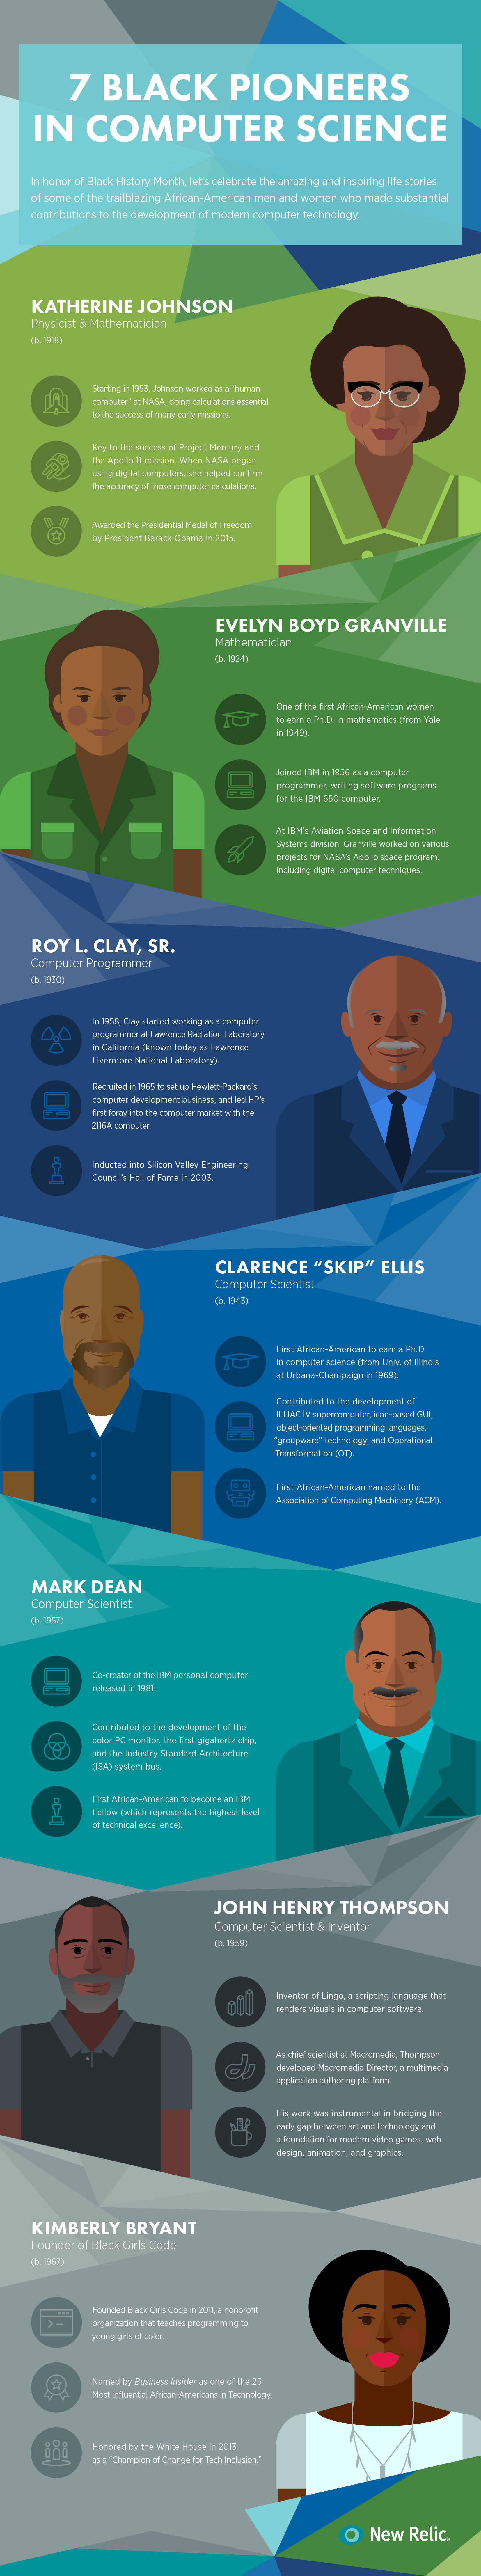 Technology Infographic Black Pioneers Computer Science